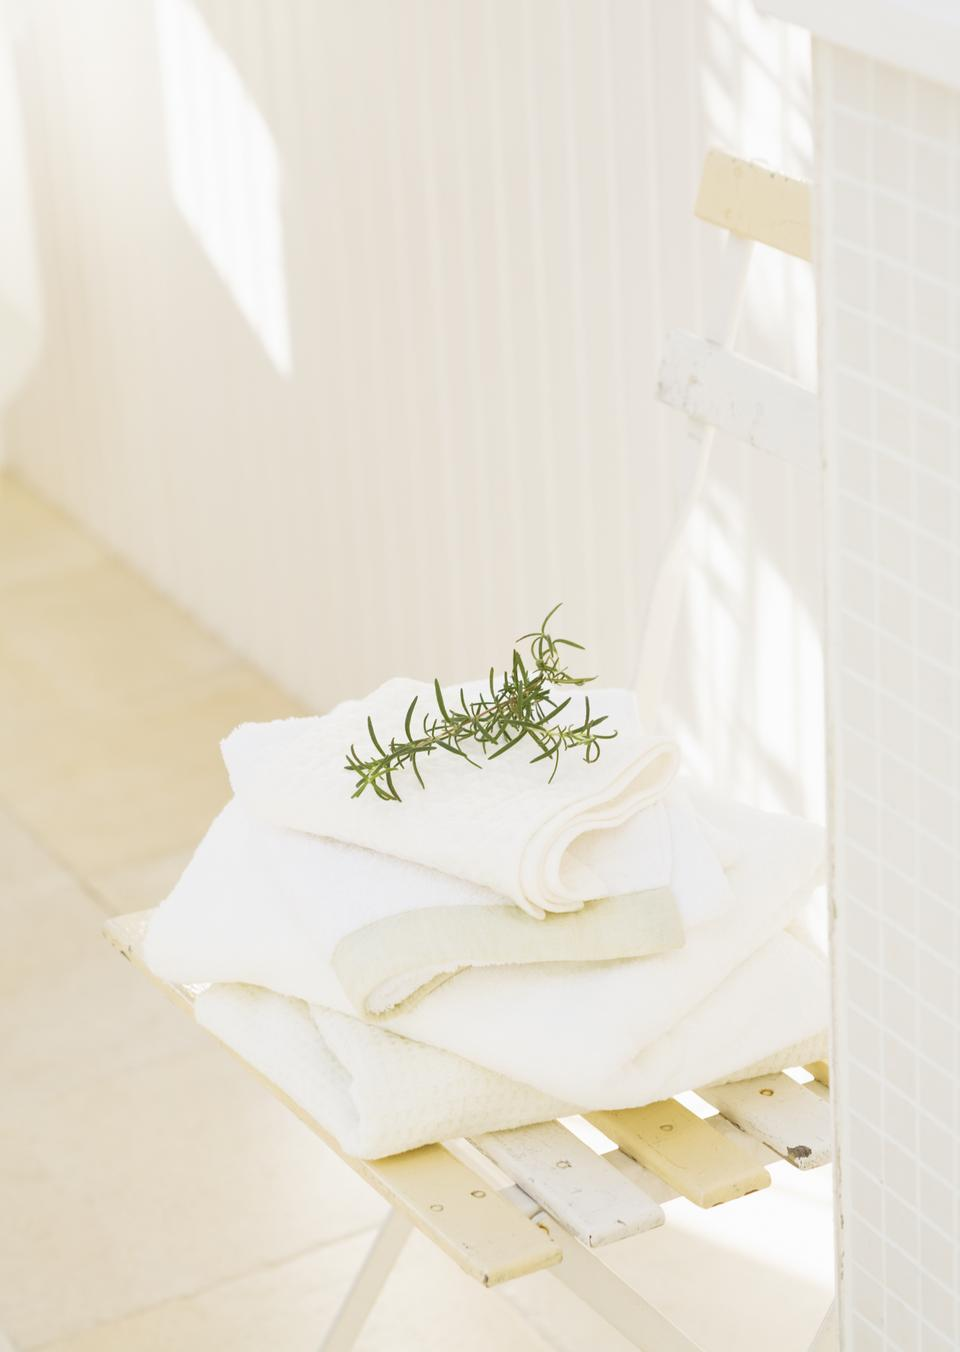 Branches of rosemary and  white towels on chair